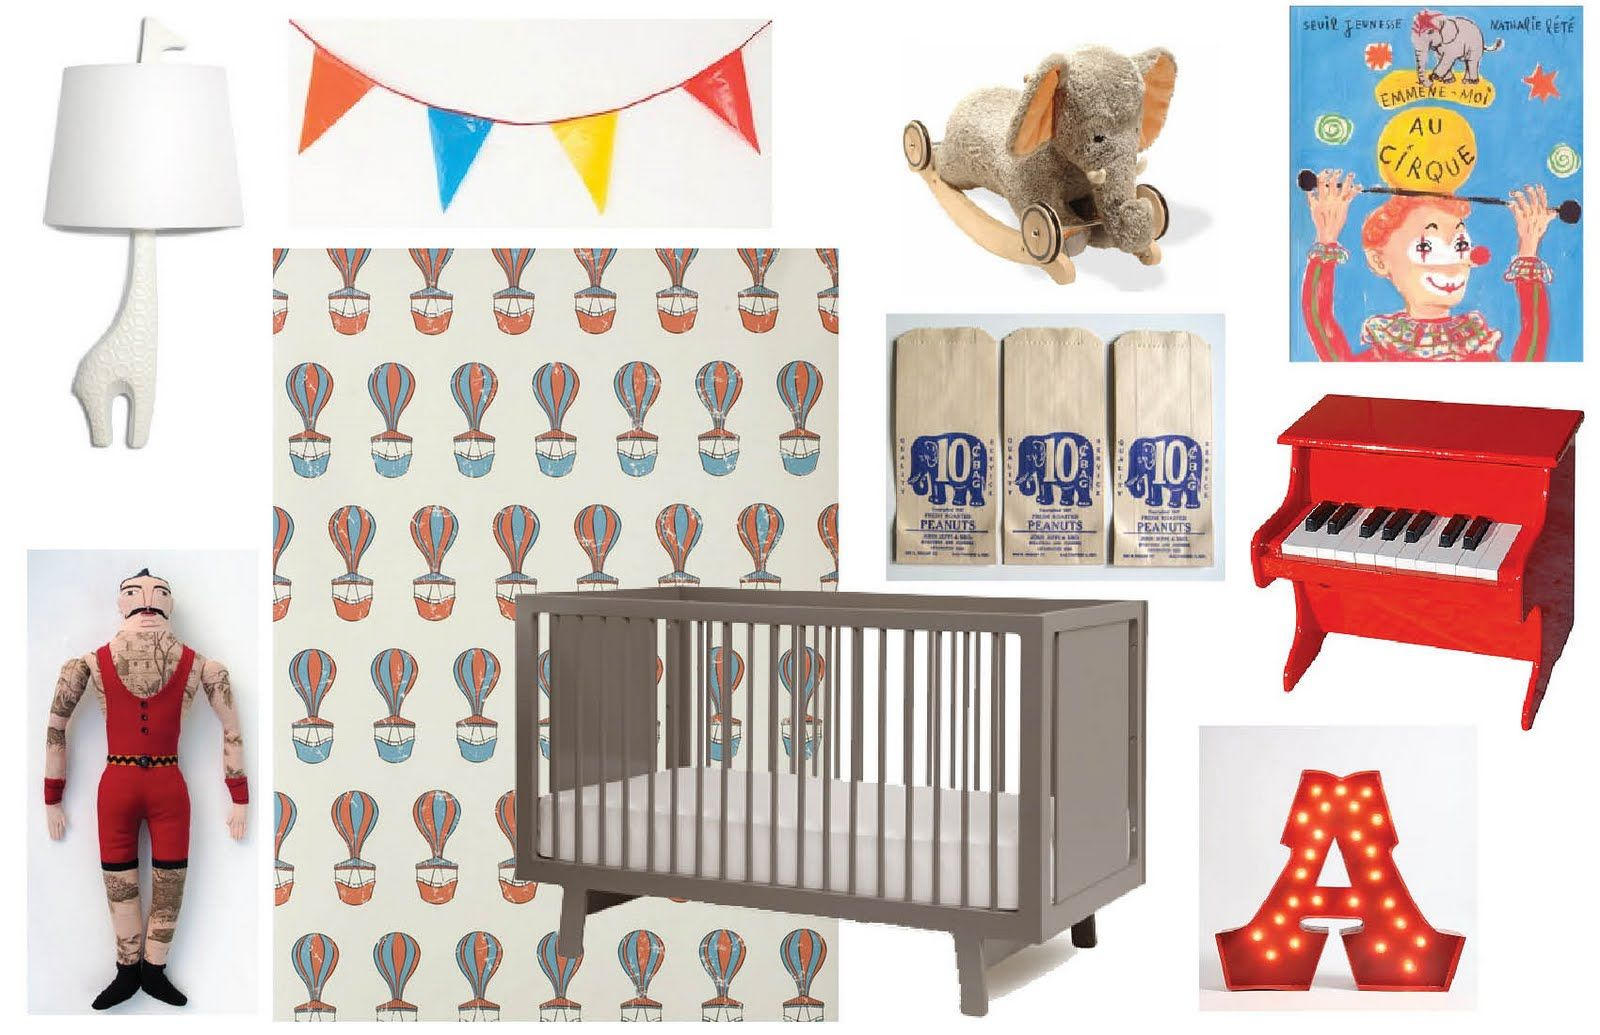 Circus Themed Nursery, I Like This Idea With A Vintage Theme. Hmmm..